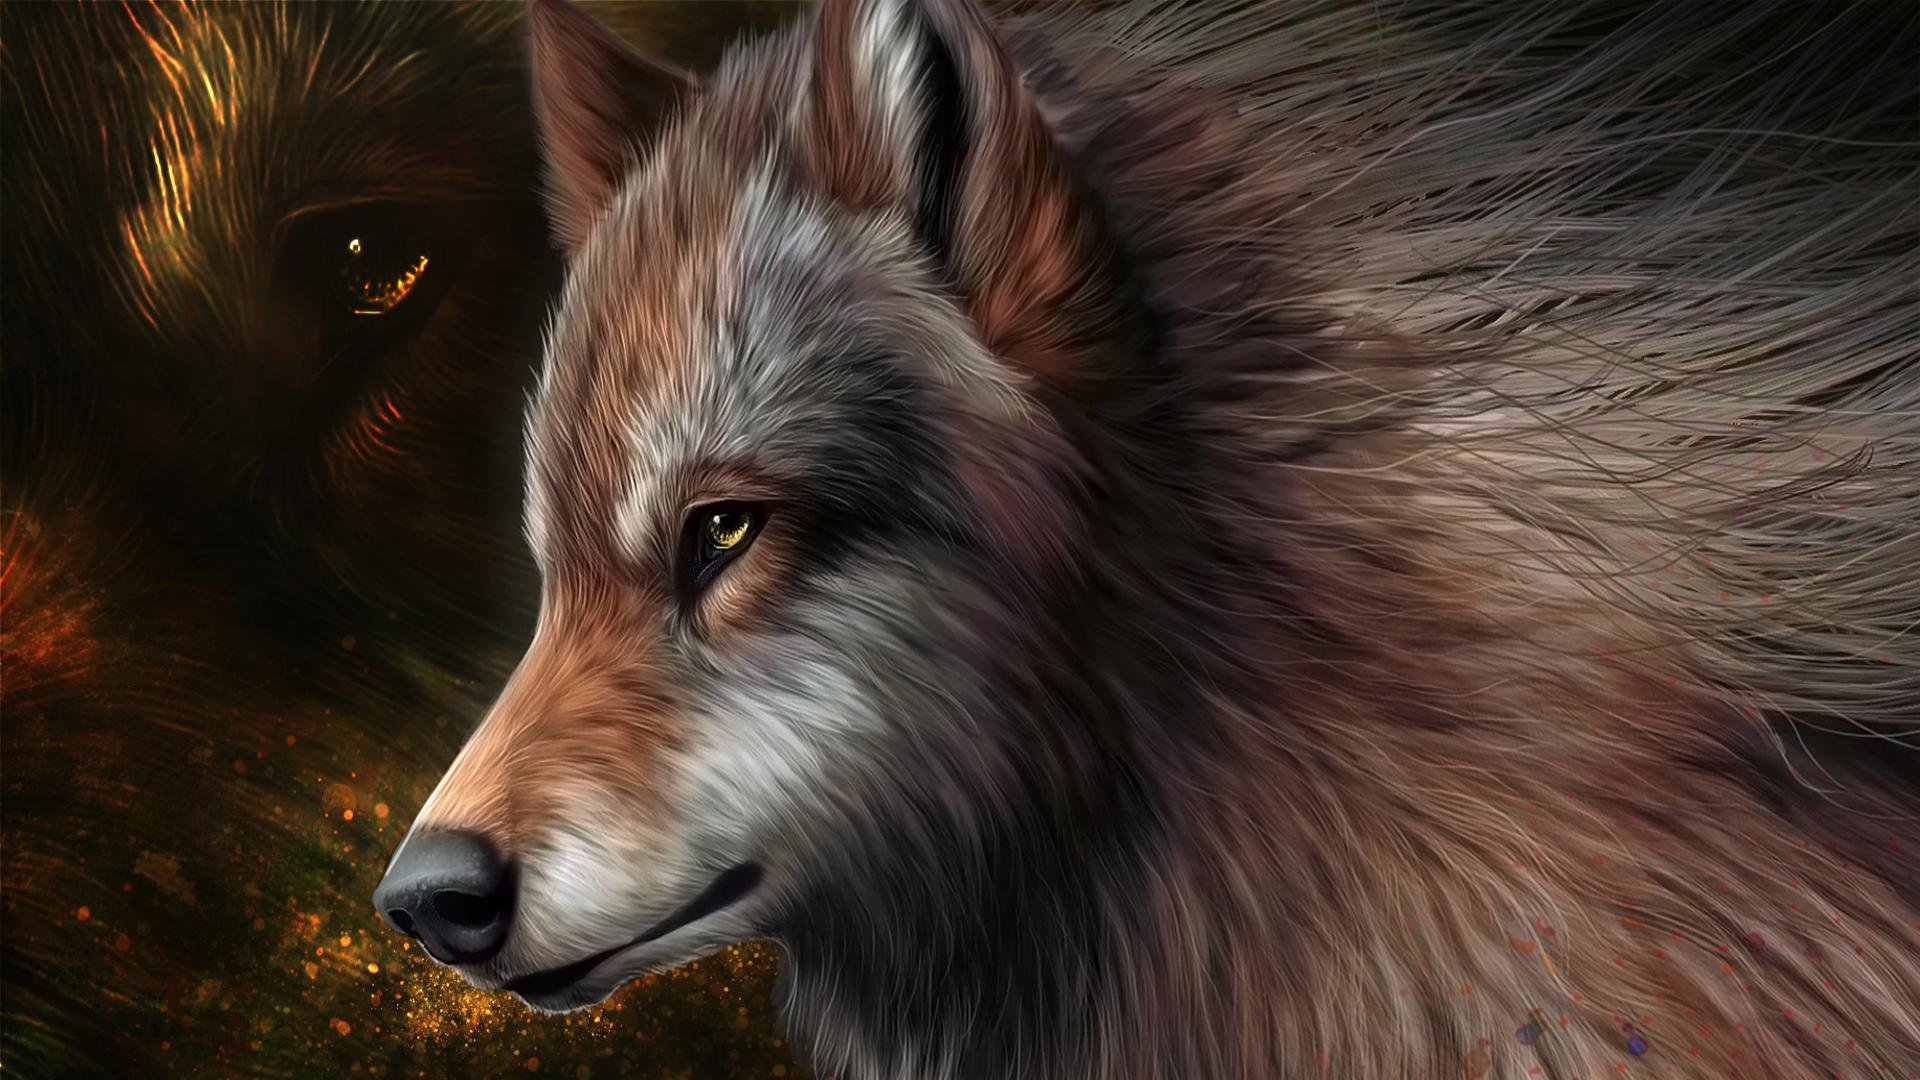 Download 1080p Wolf PC wallpaper ID:117954 for free